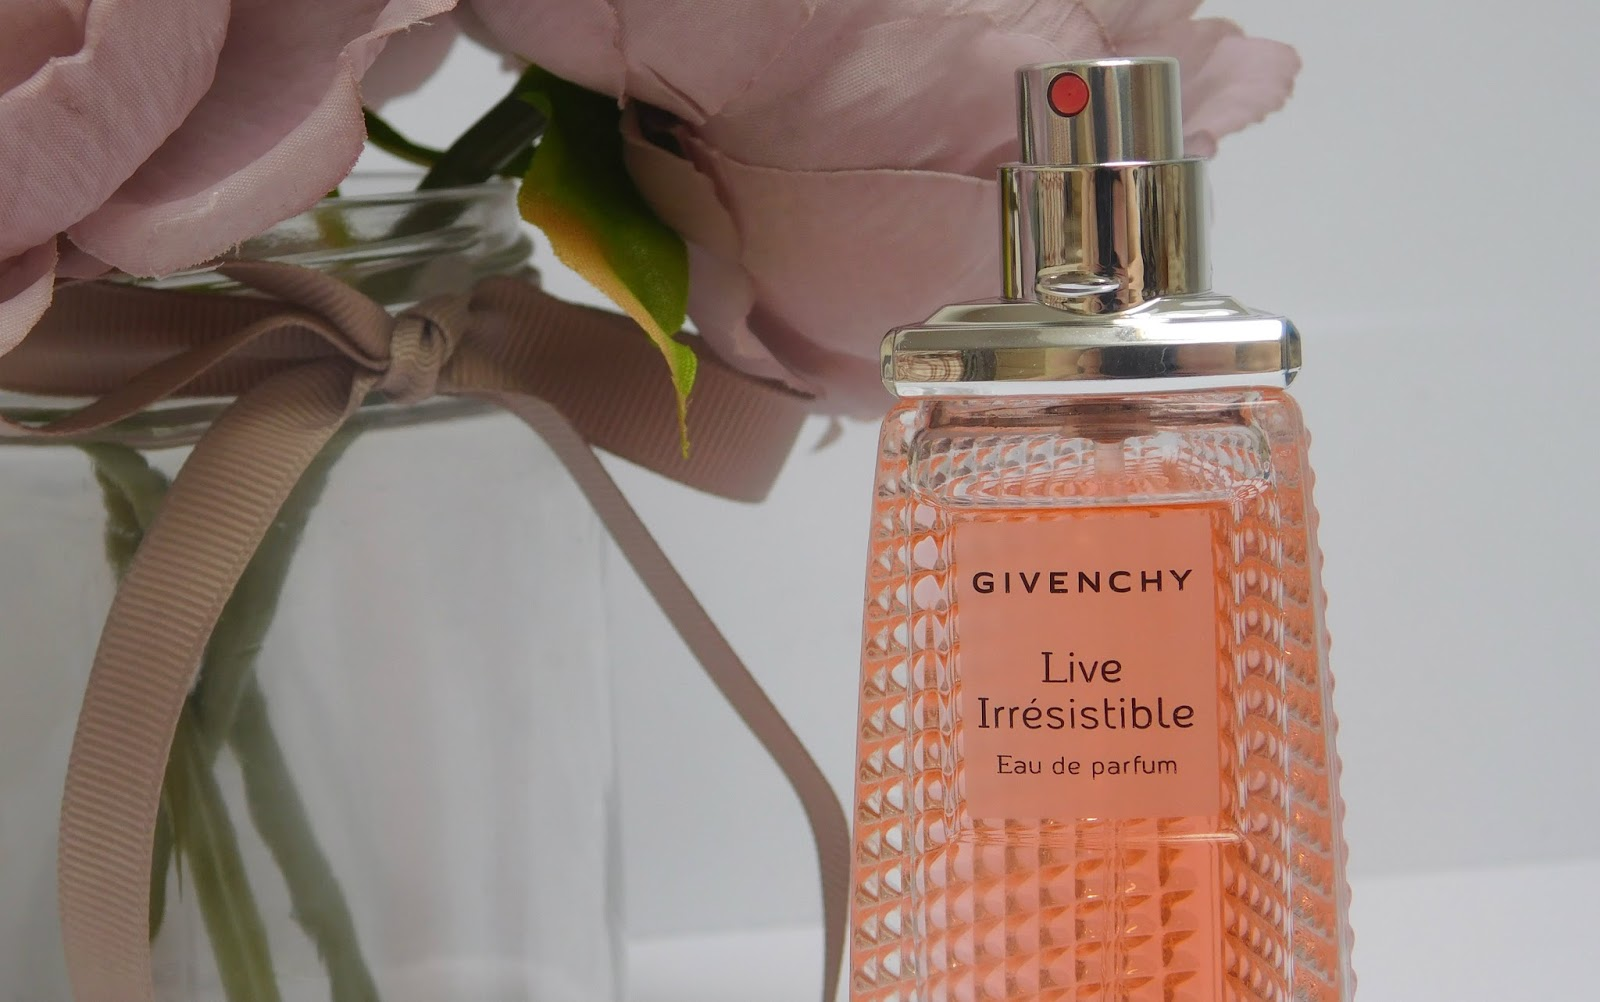 Givenchy - Live Irresistible